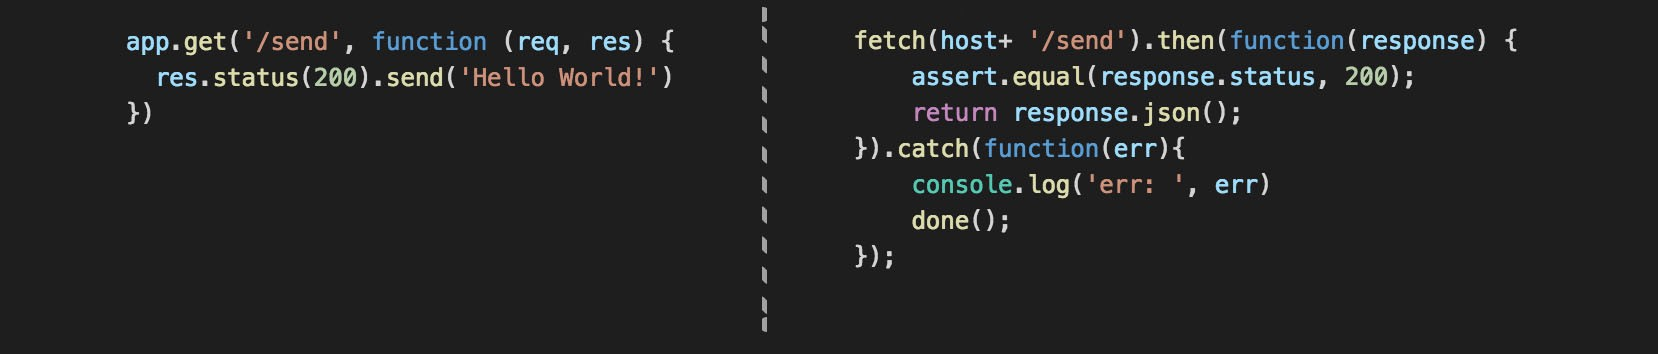 Nodejs][React] Isomorphic-Fetch: the suspicious part - By